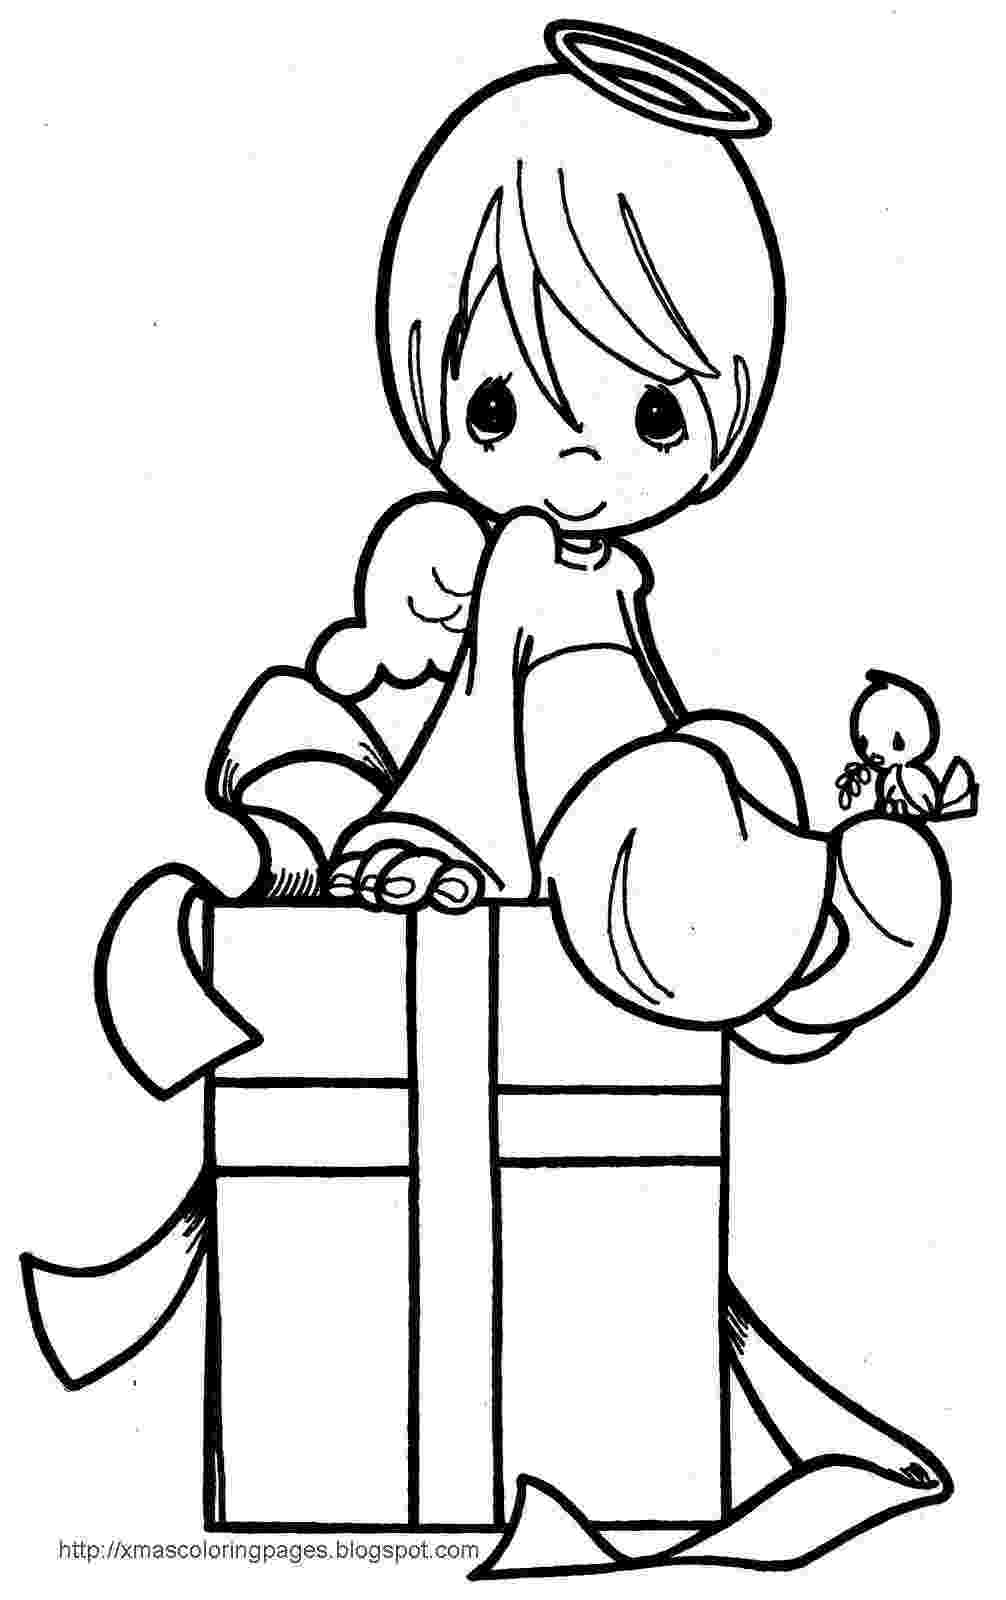 coloring pages of angels xmas coloring pages of pages angels coloring